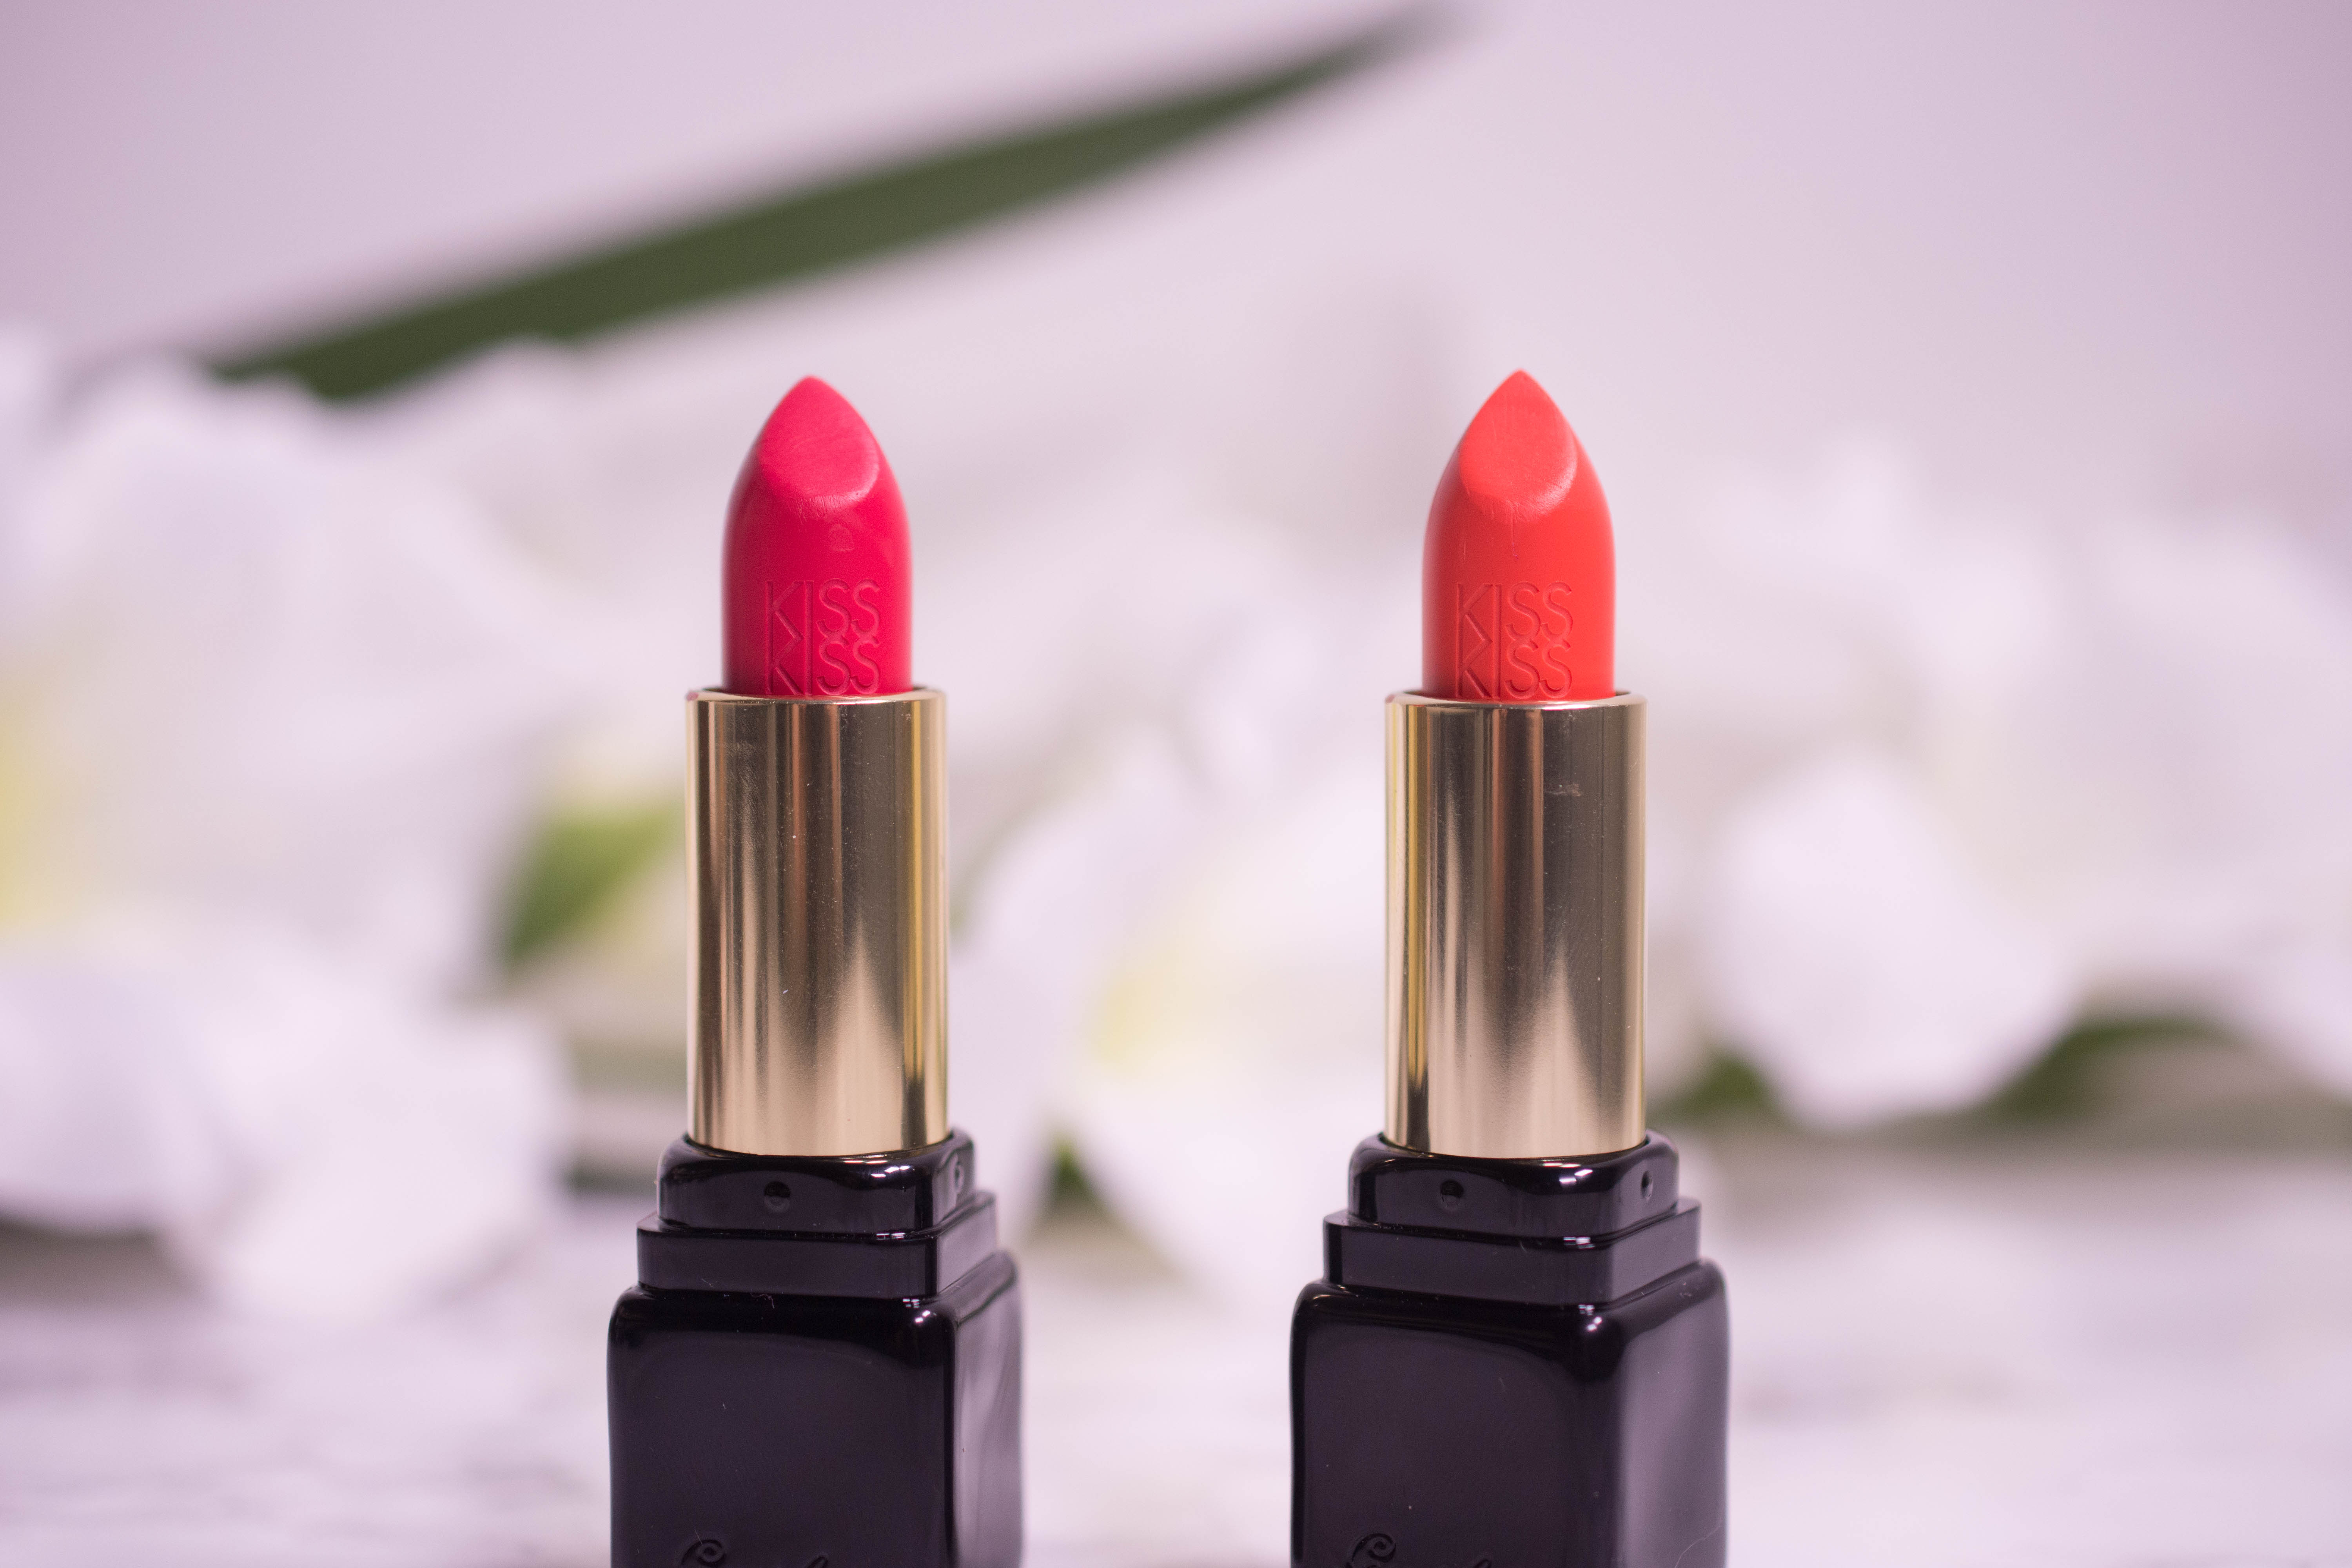 Guerlain Terracotta Collection Kiss Kiss Lipsticks